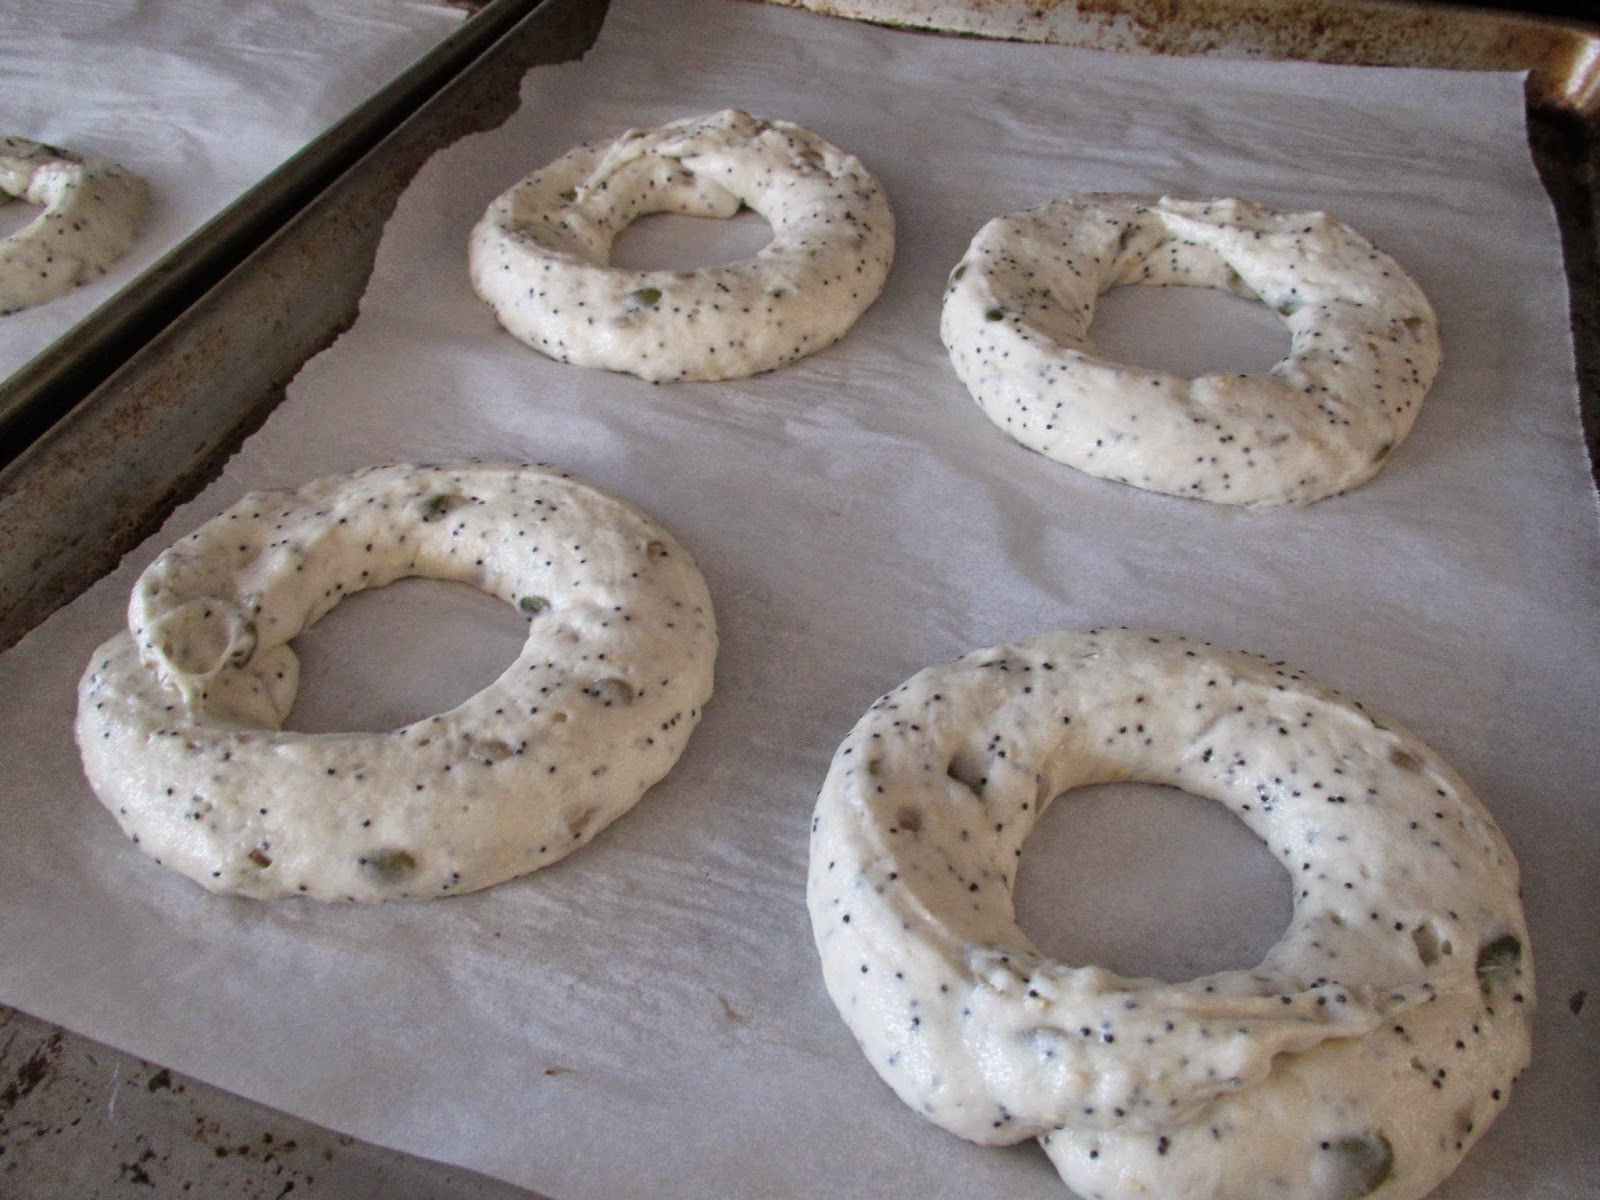 Gluten Free Bagels before rising